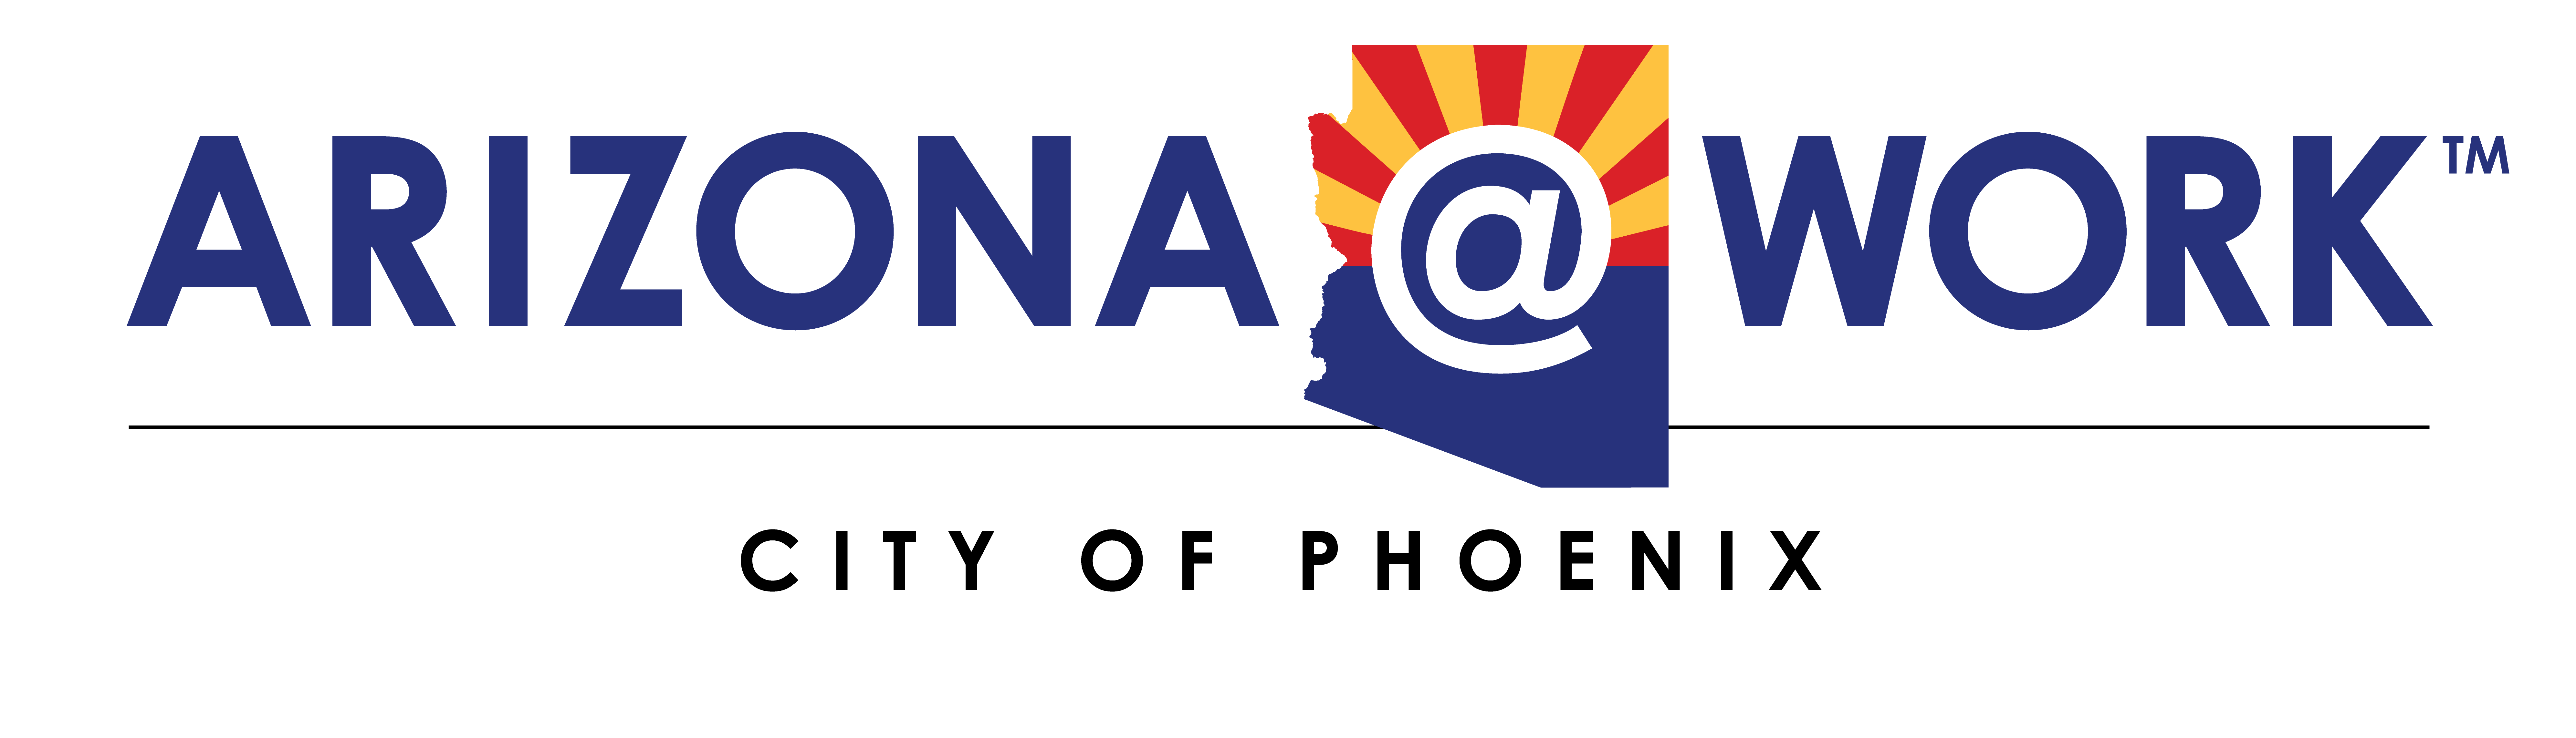 Arizona at Work logo